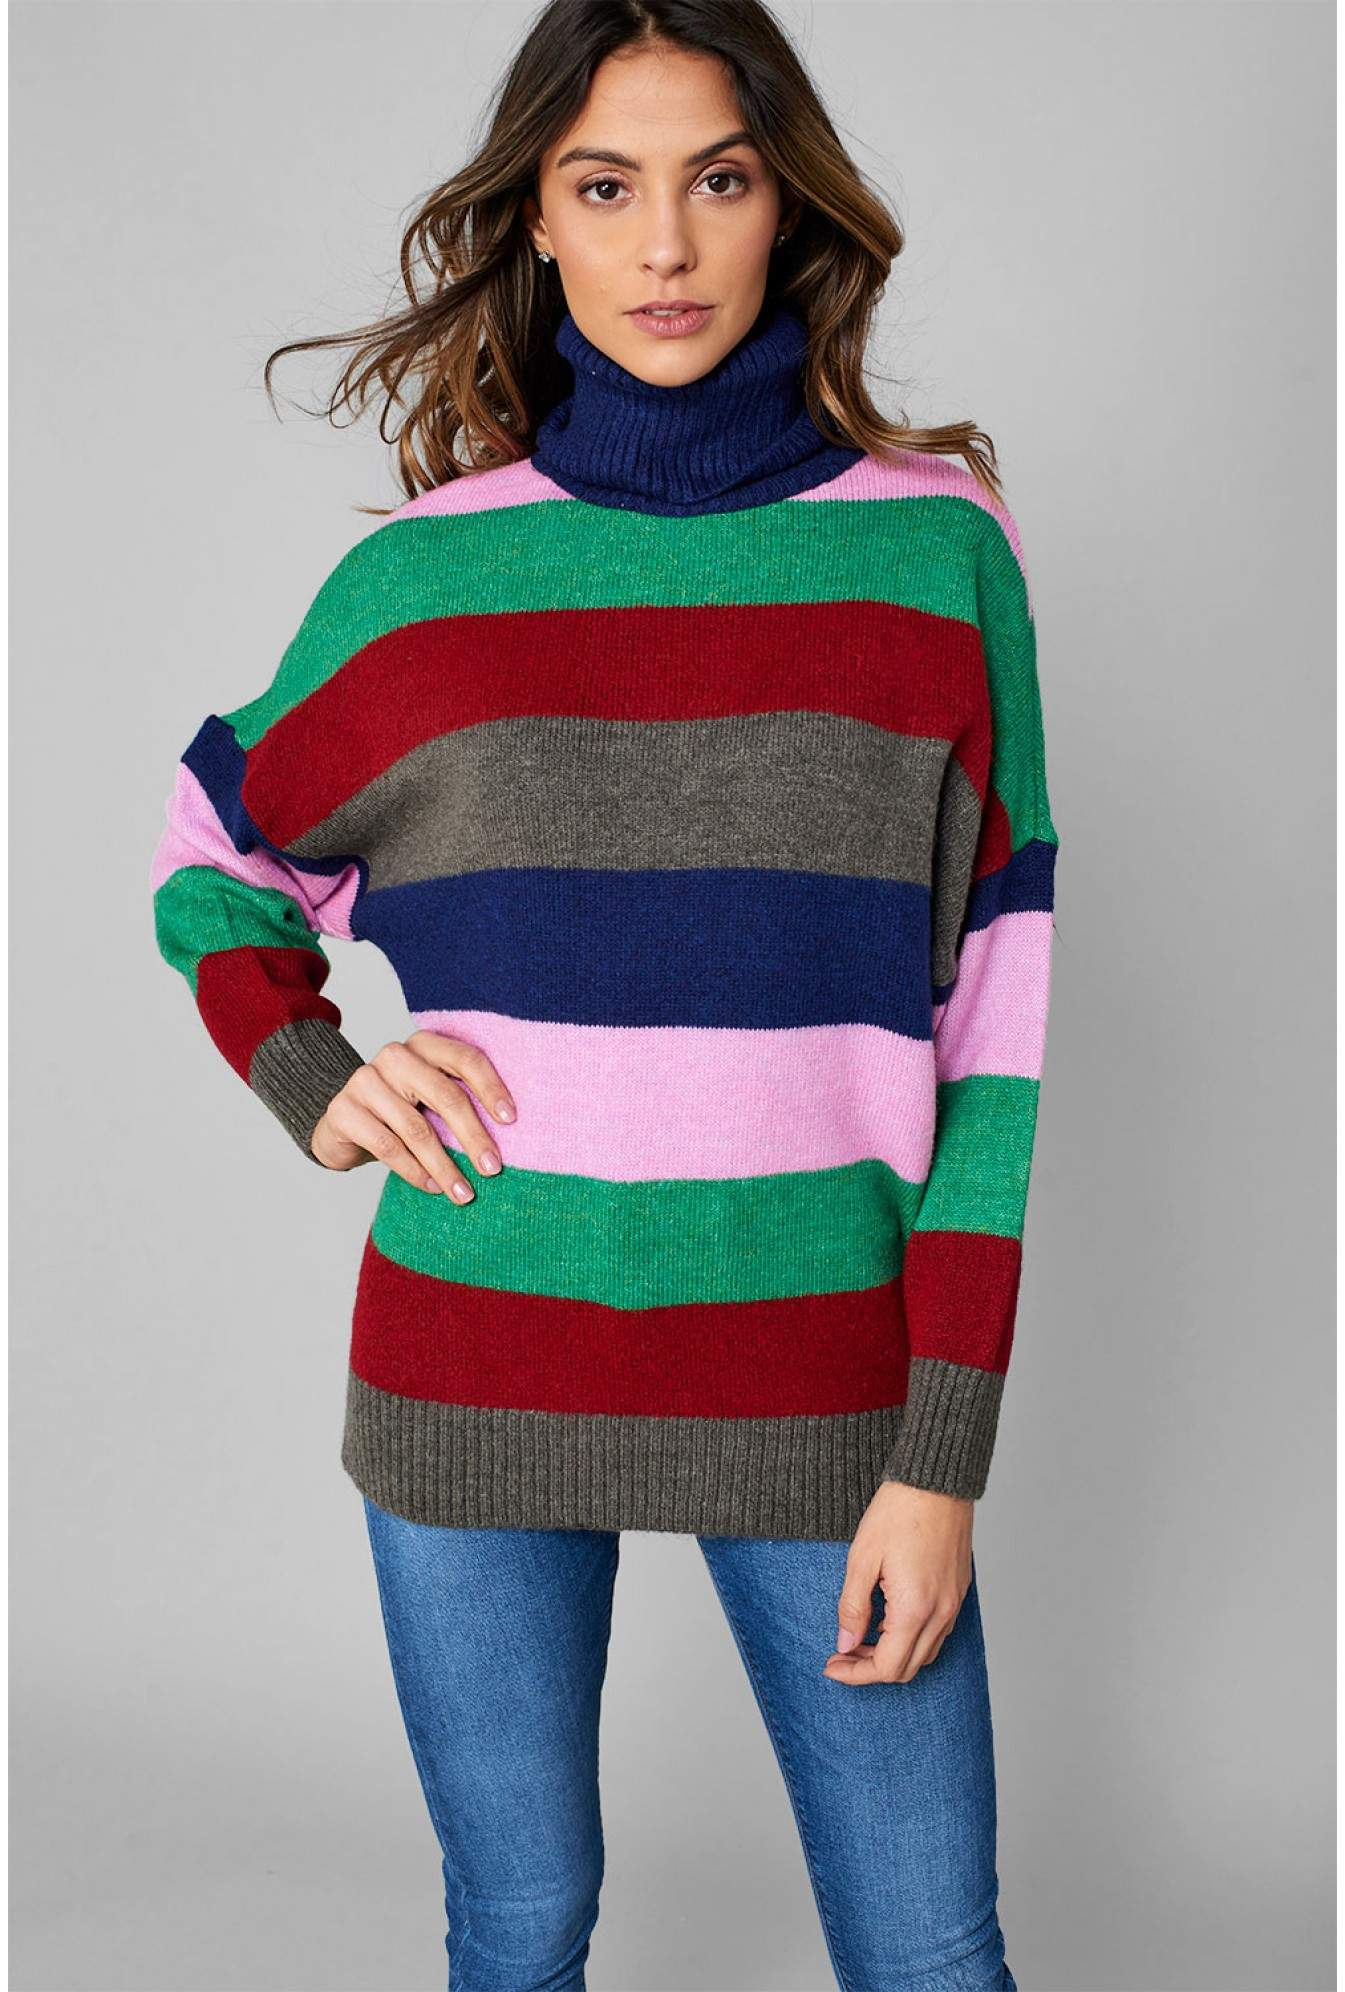 9f3a24998b3a2b Only Monica Roll Neck Knit Jumper in Rainbow Stripe | iCLOTHING